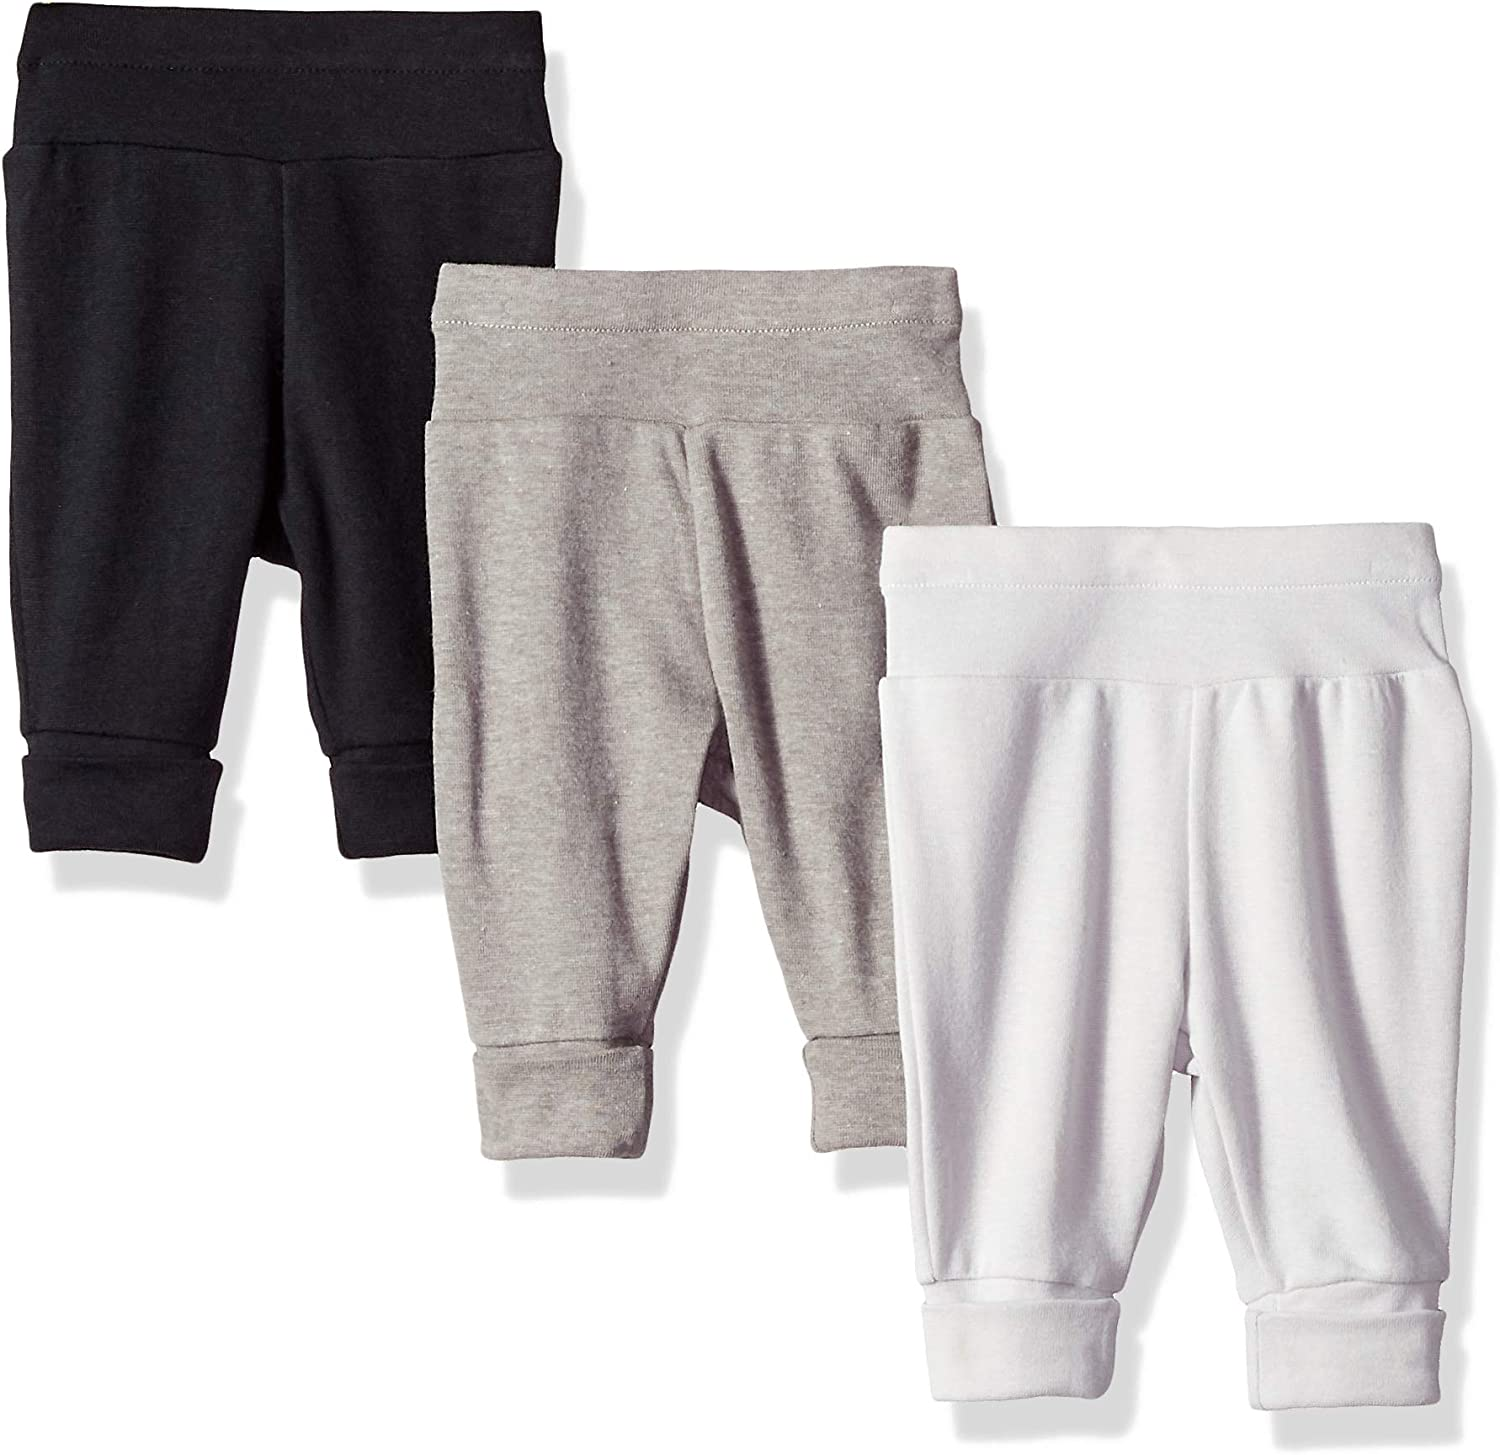 Hanes Ultimate Baby Flexy 3 Pack Adjustable Fit Knit Jogger Pants: Clothing